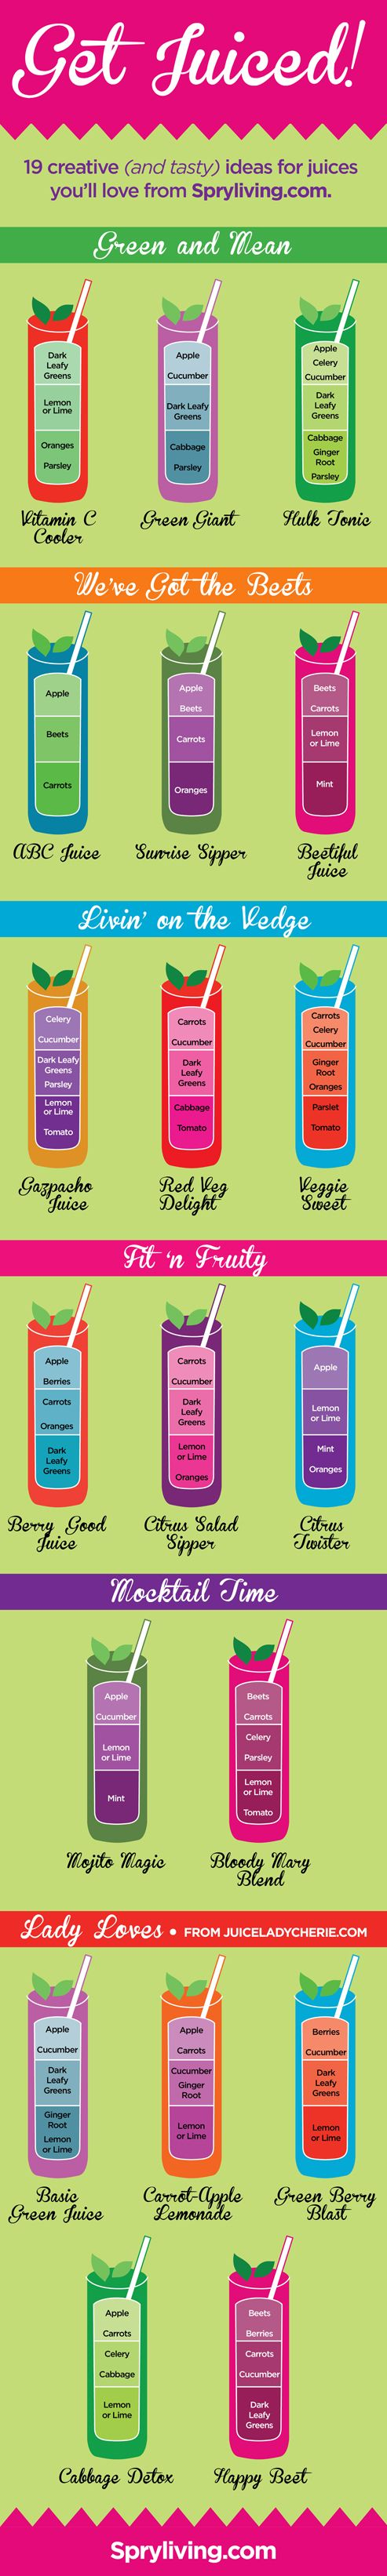 Variety of juices/smoothies to try from @Spry Living